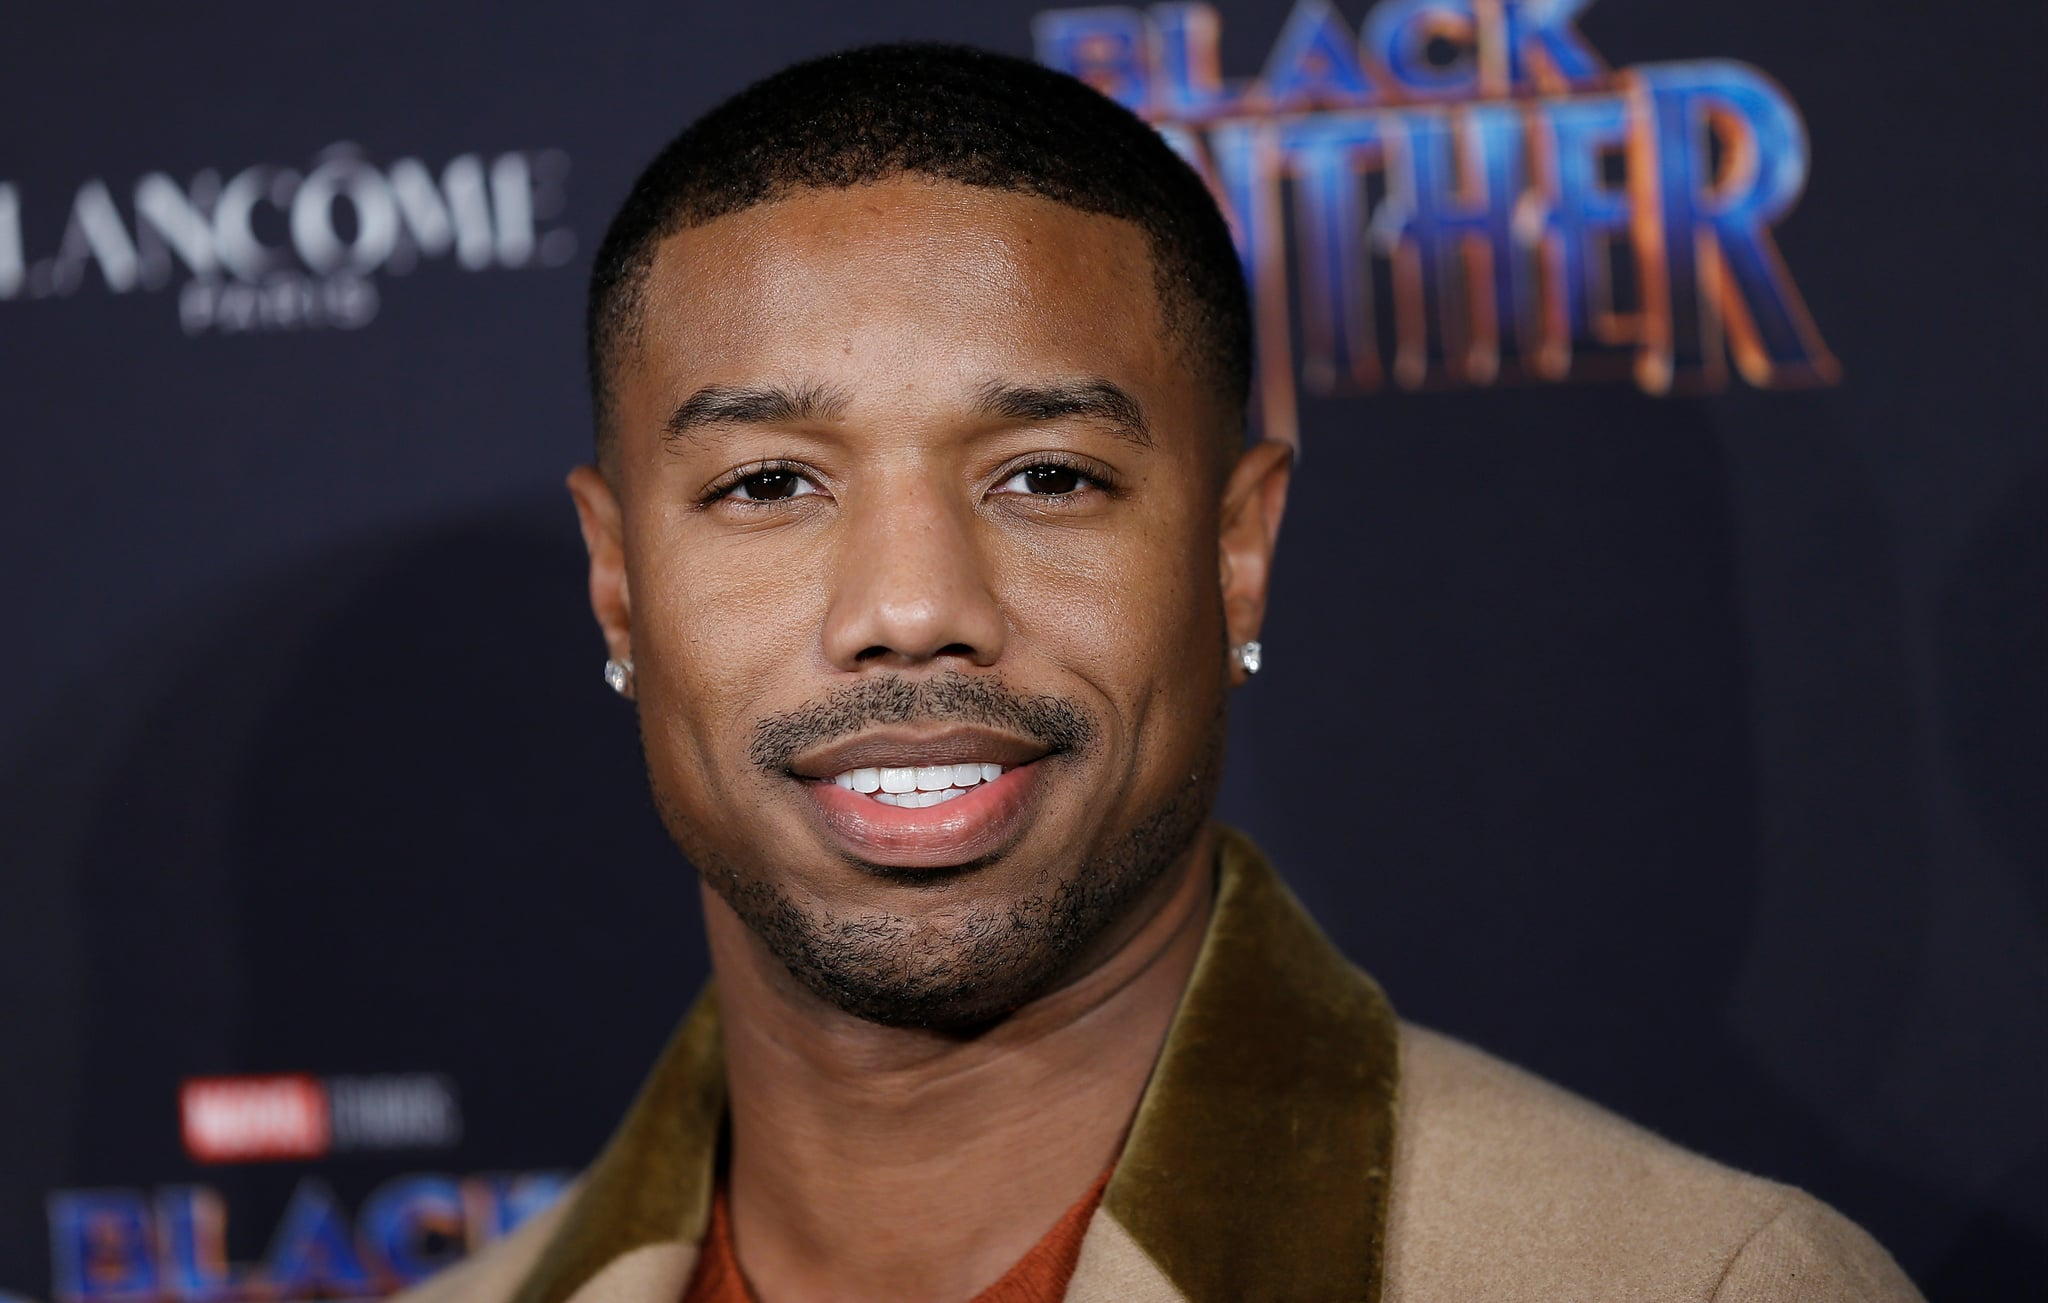 NEW YORK, NY - FEBRUARY 12:  Michael B. Jordan  attends Marvel Studios Presents: Black Panther Welcome To Wakanda during February 2018  New York Fashion Week: The Shows at Industria Studios on February 12, 2018 in New York City.  (Photo by John Lamparski/WireImage)